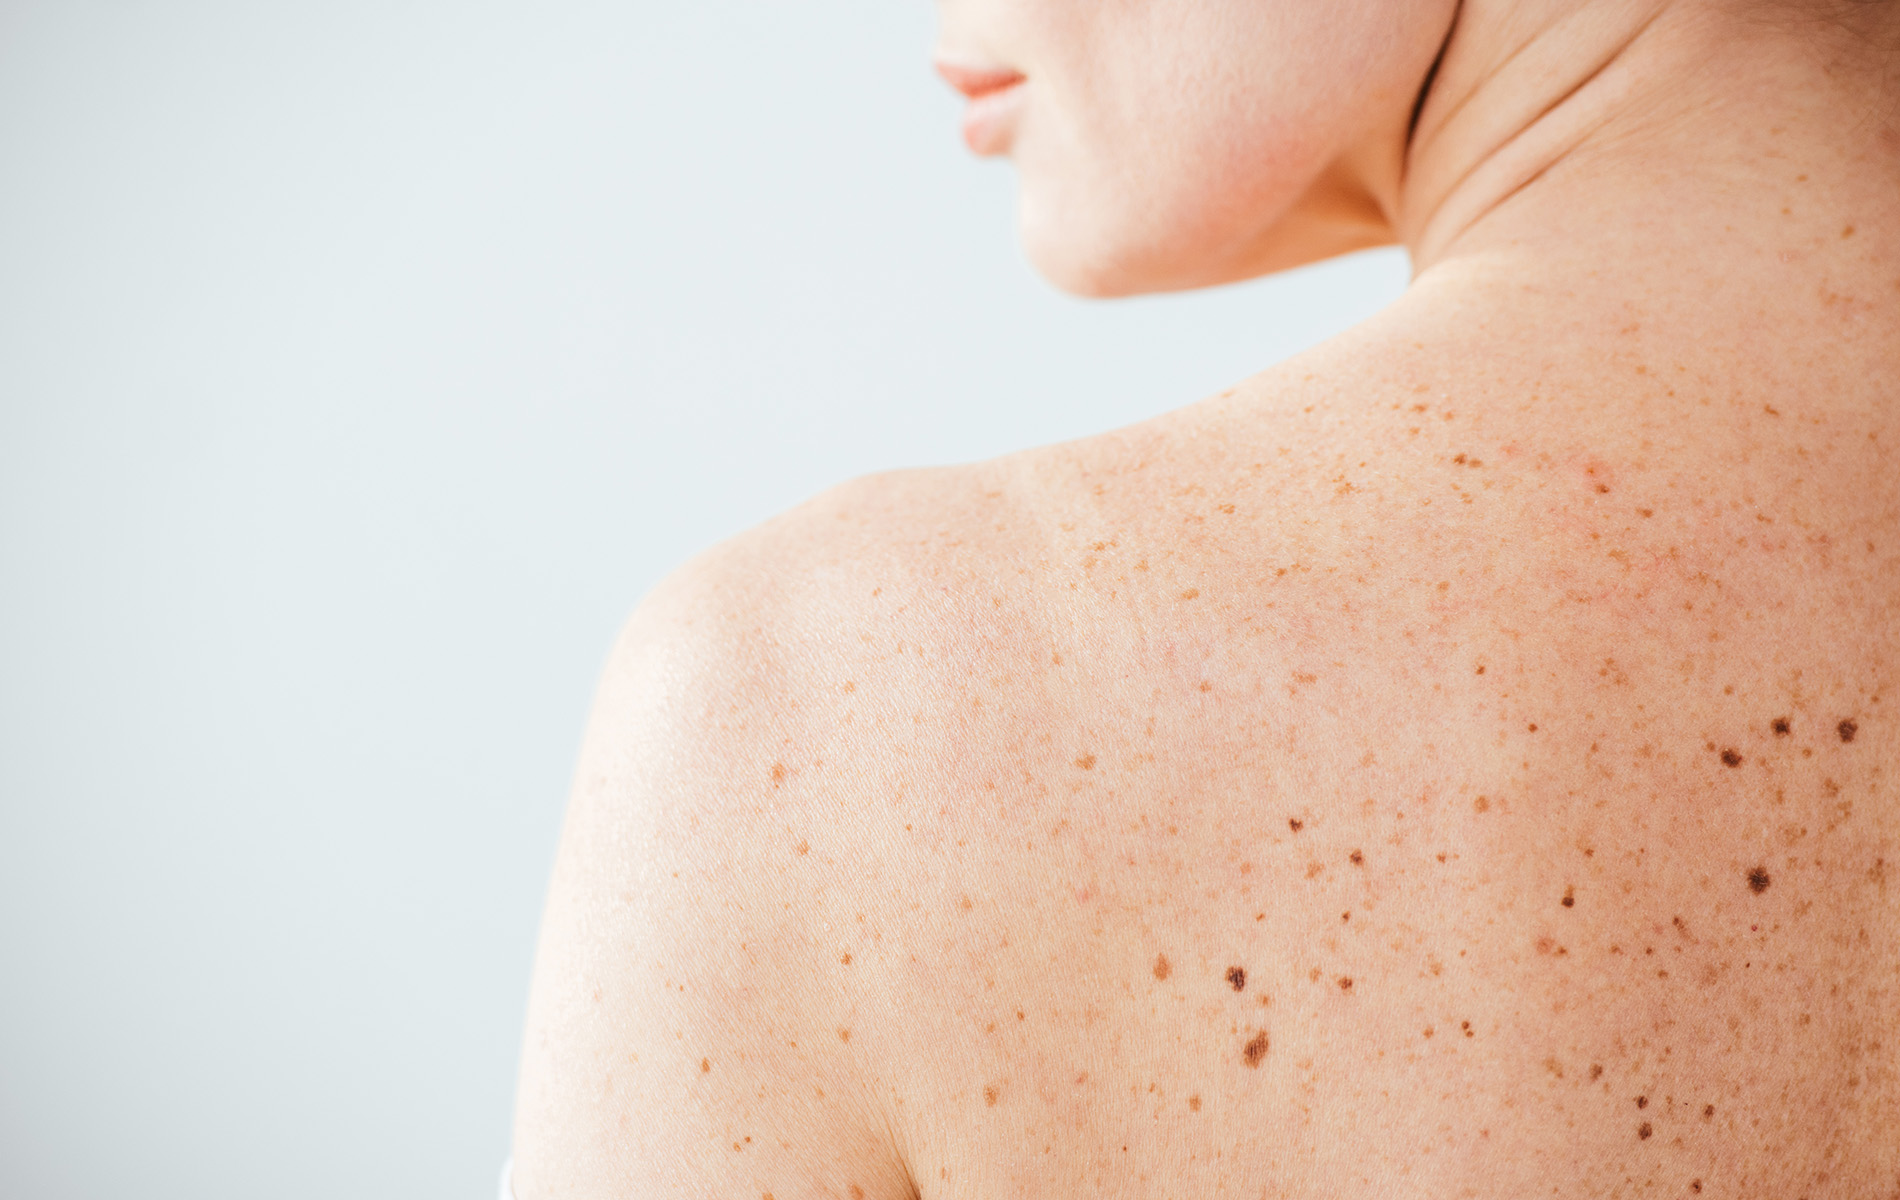 Woman's back with moles